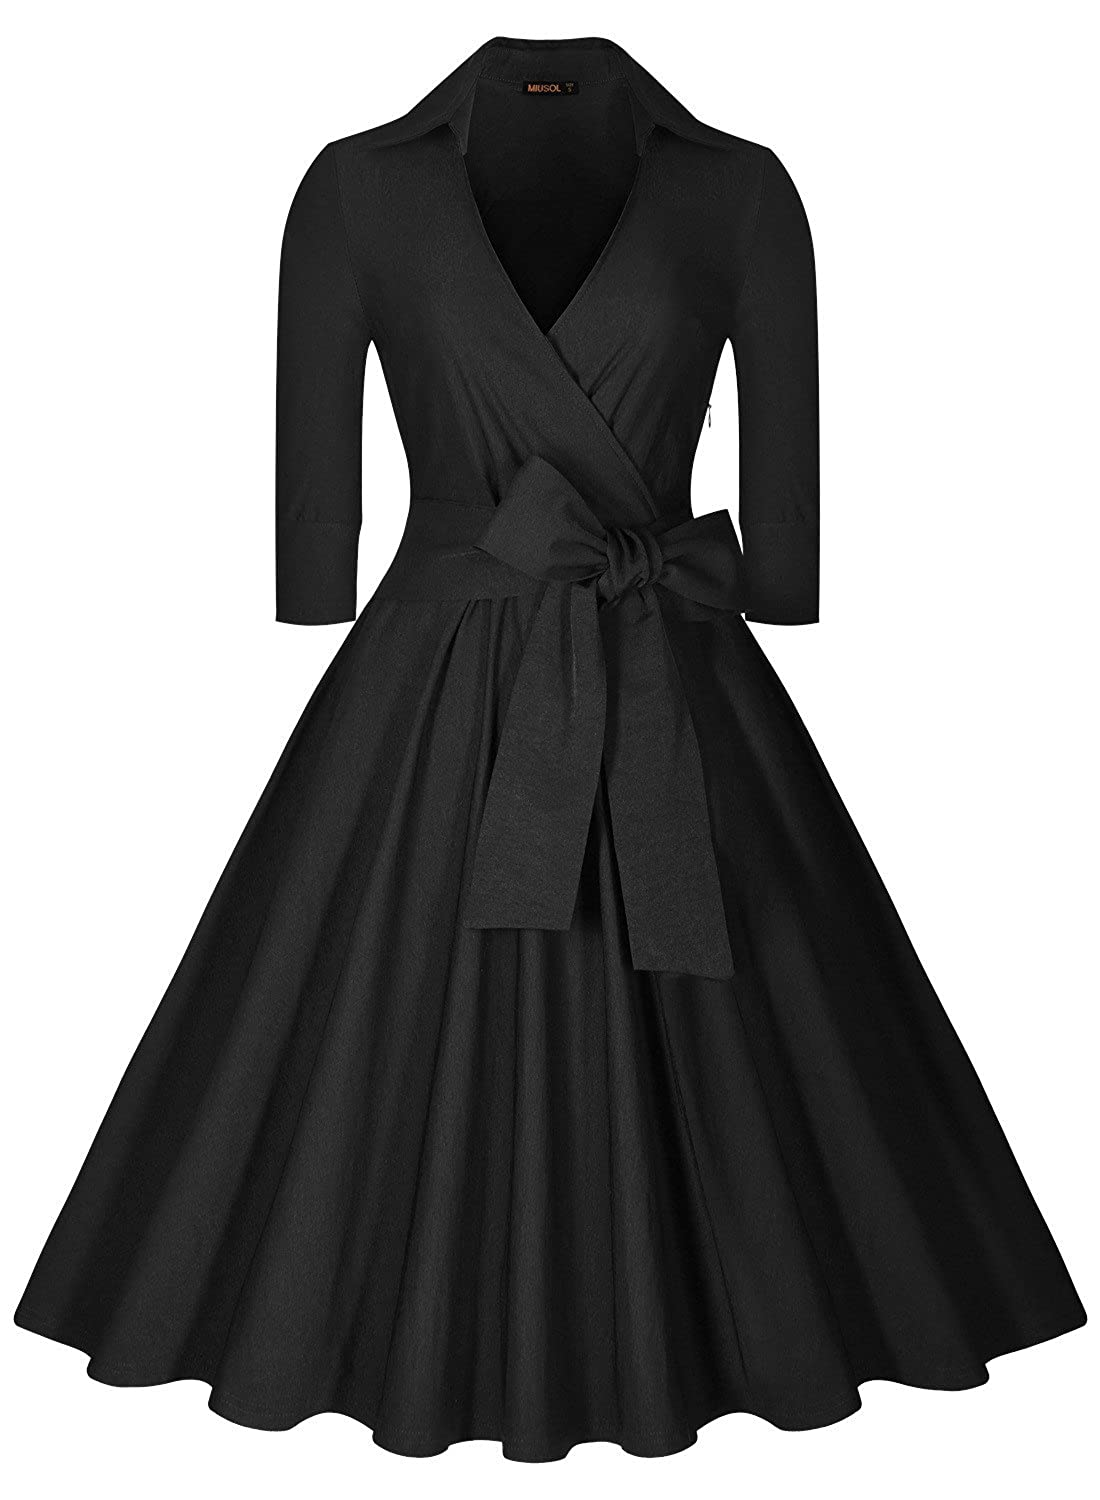 Bridesmaid dresses amazon womens deep v neck classical bow belt vintage casual swing dress ombrellifo Choice Image